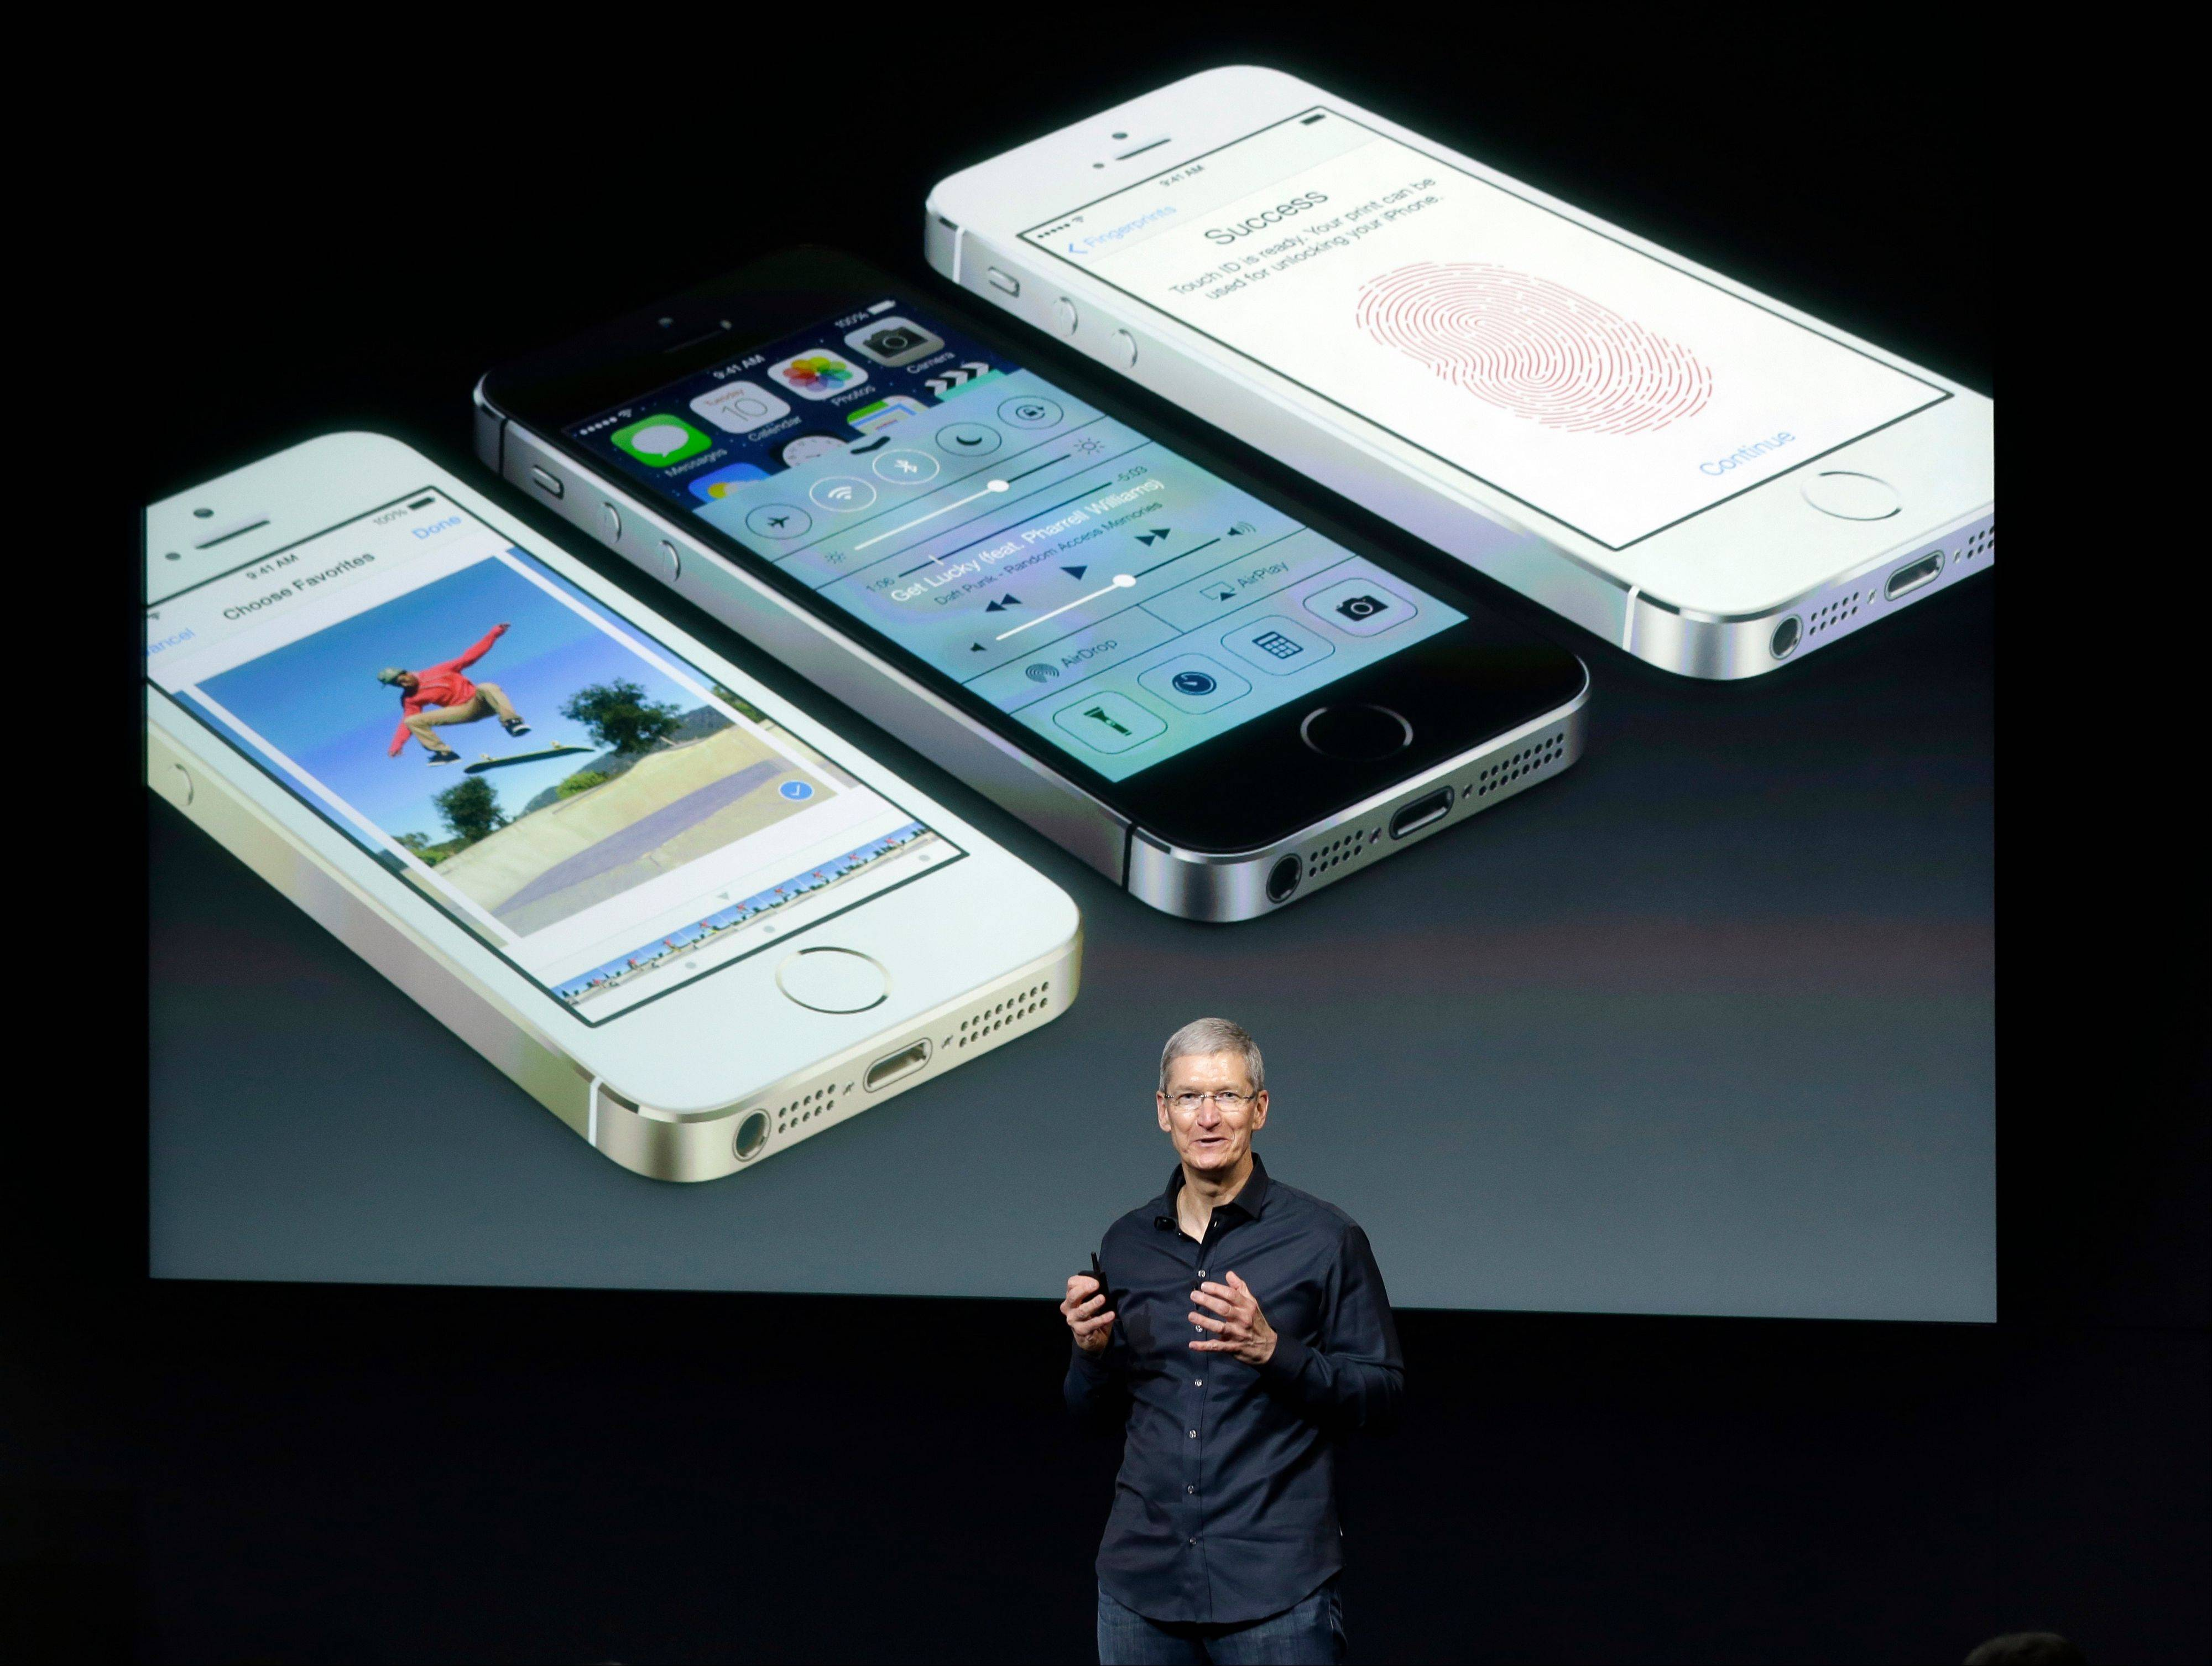 Tim Cook, CEO of Apple, speaks on stage during the introduction of the new iPhone 5s in Cupertino, Calif., Tuesday.